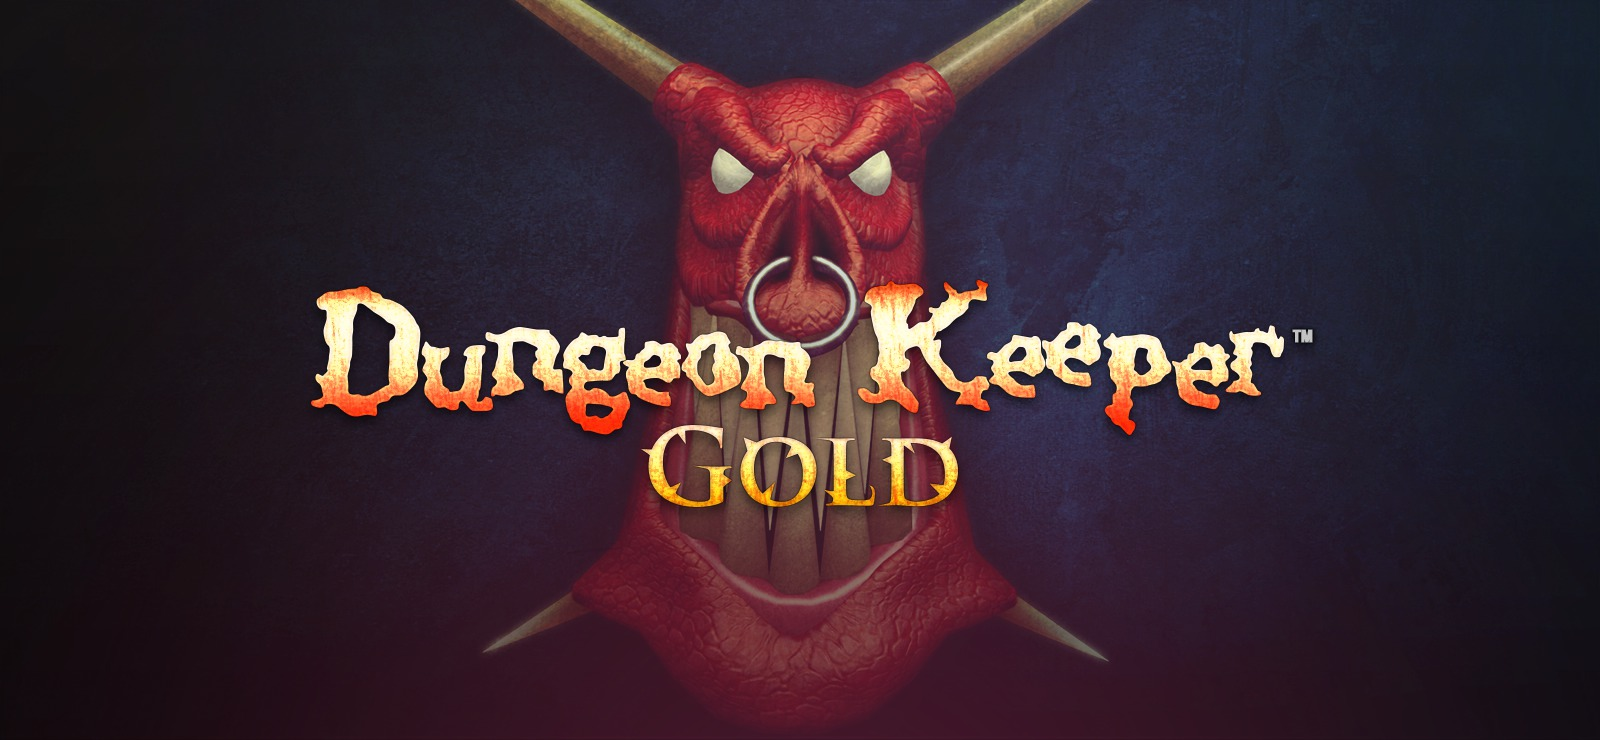 Dungeon Keeper, released in 1997 by Bullfrog Productions, rereleased several years later as Dungeon Keeper Gold.